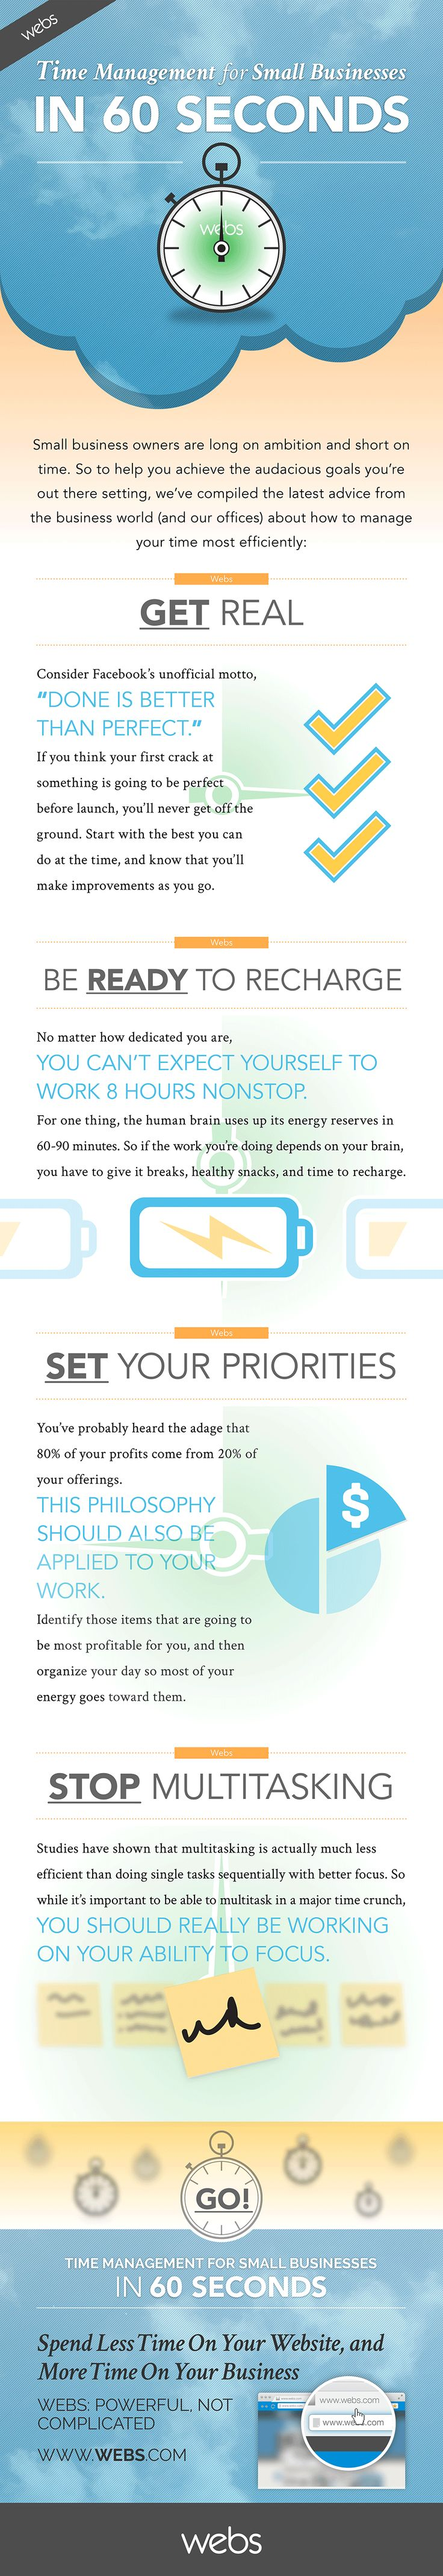 Time Management Tips for Small Business Owners [INFOGRAPHIC] - An Infographic from Marketing Mojo for Small Business